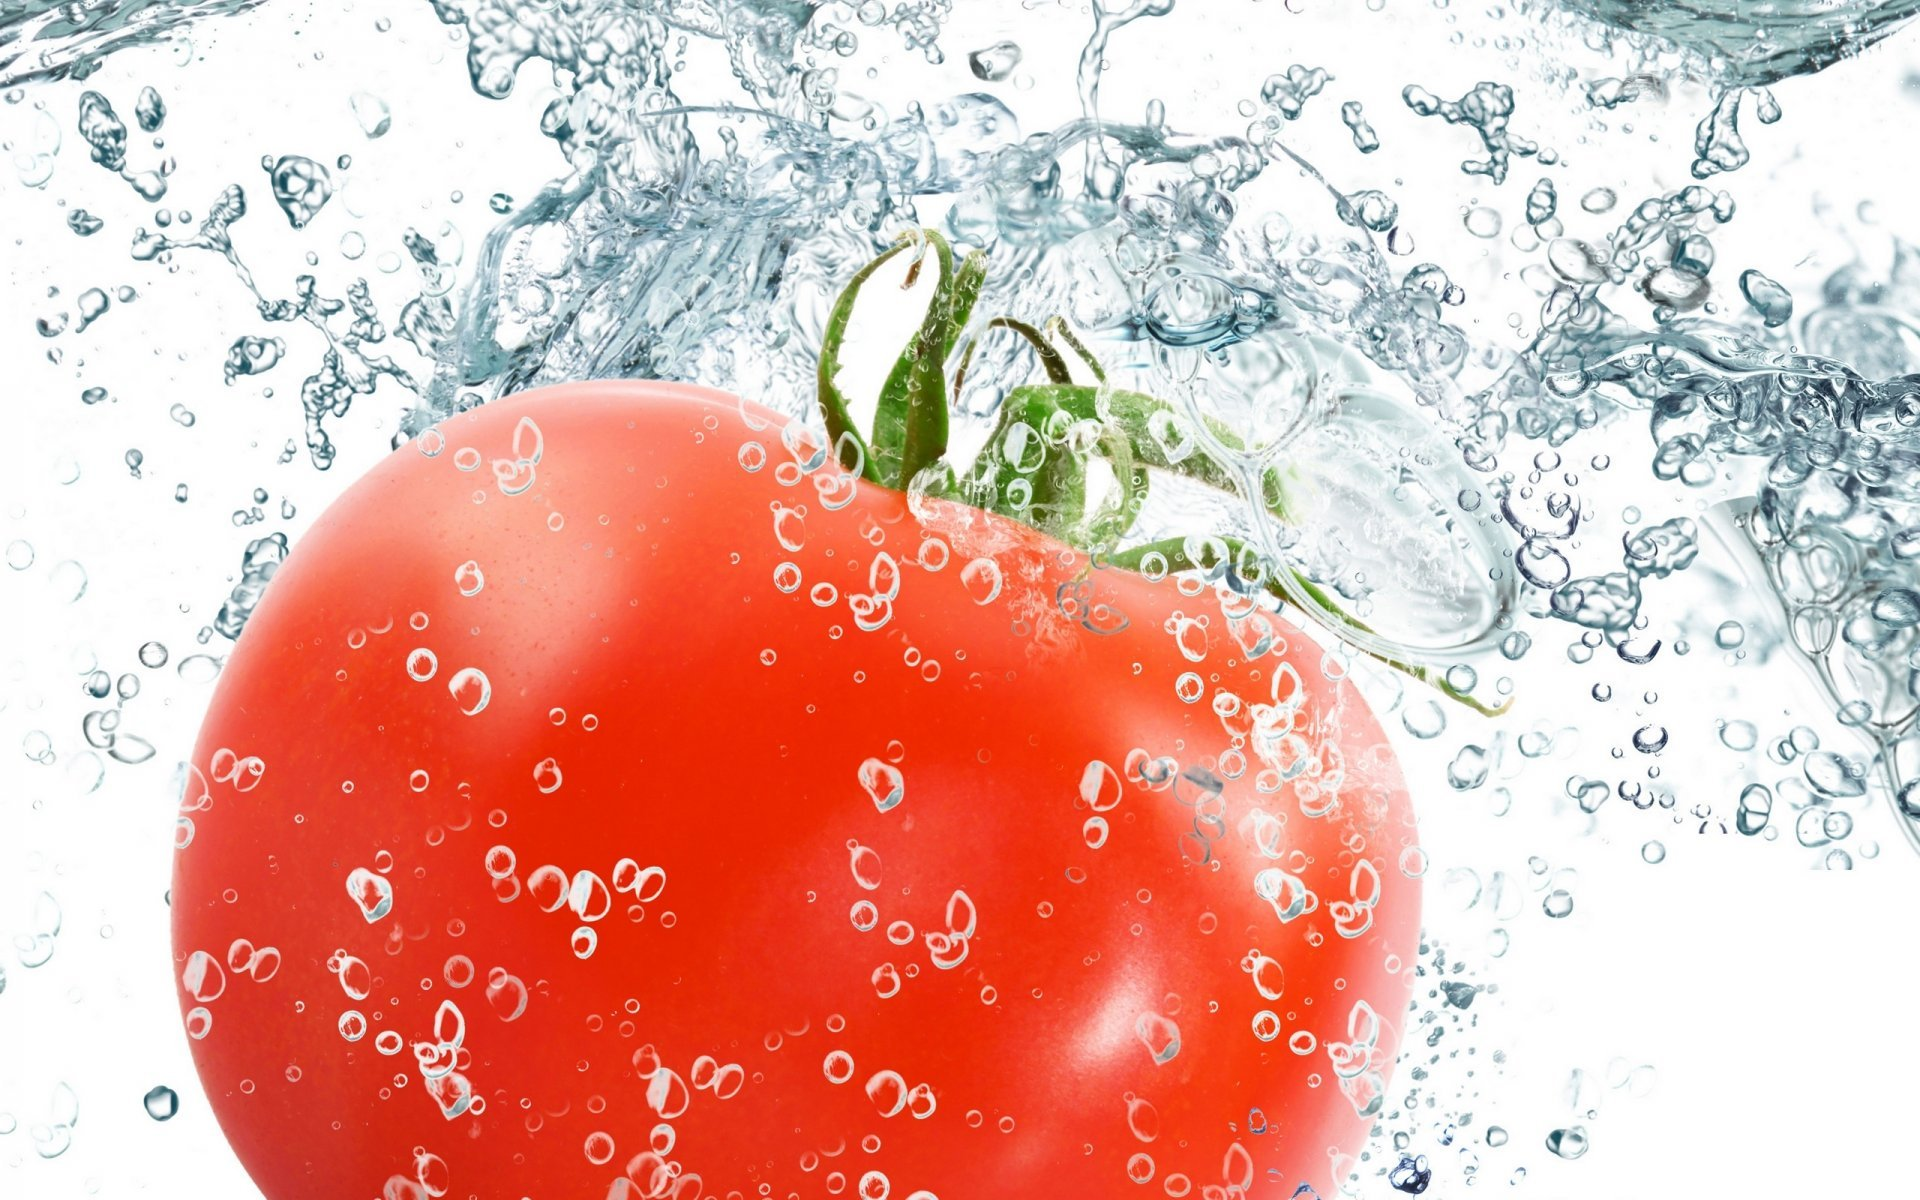 tomato-red-water-drops-spray-vegetable-vegetables-tomato-red-water-drops-spray-freshness